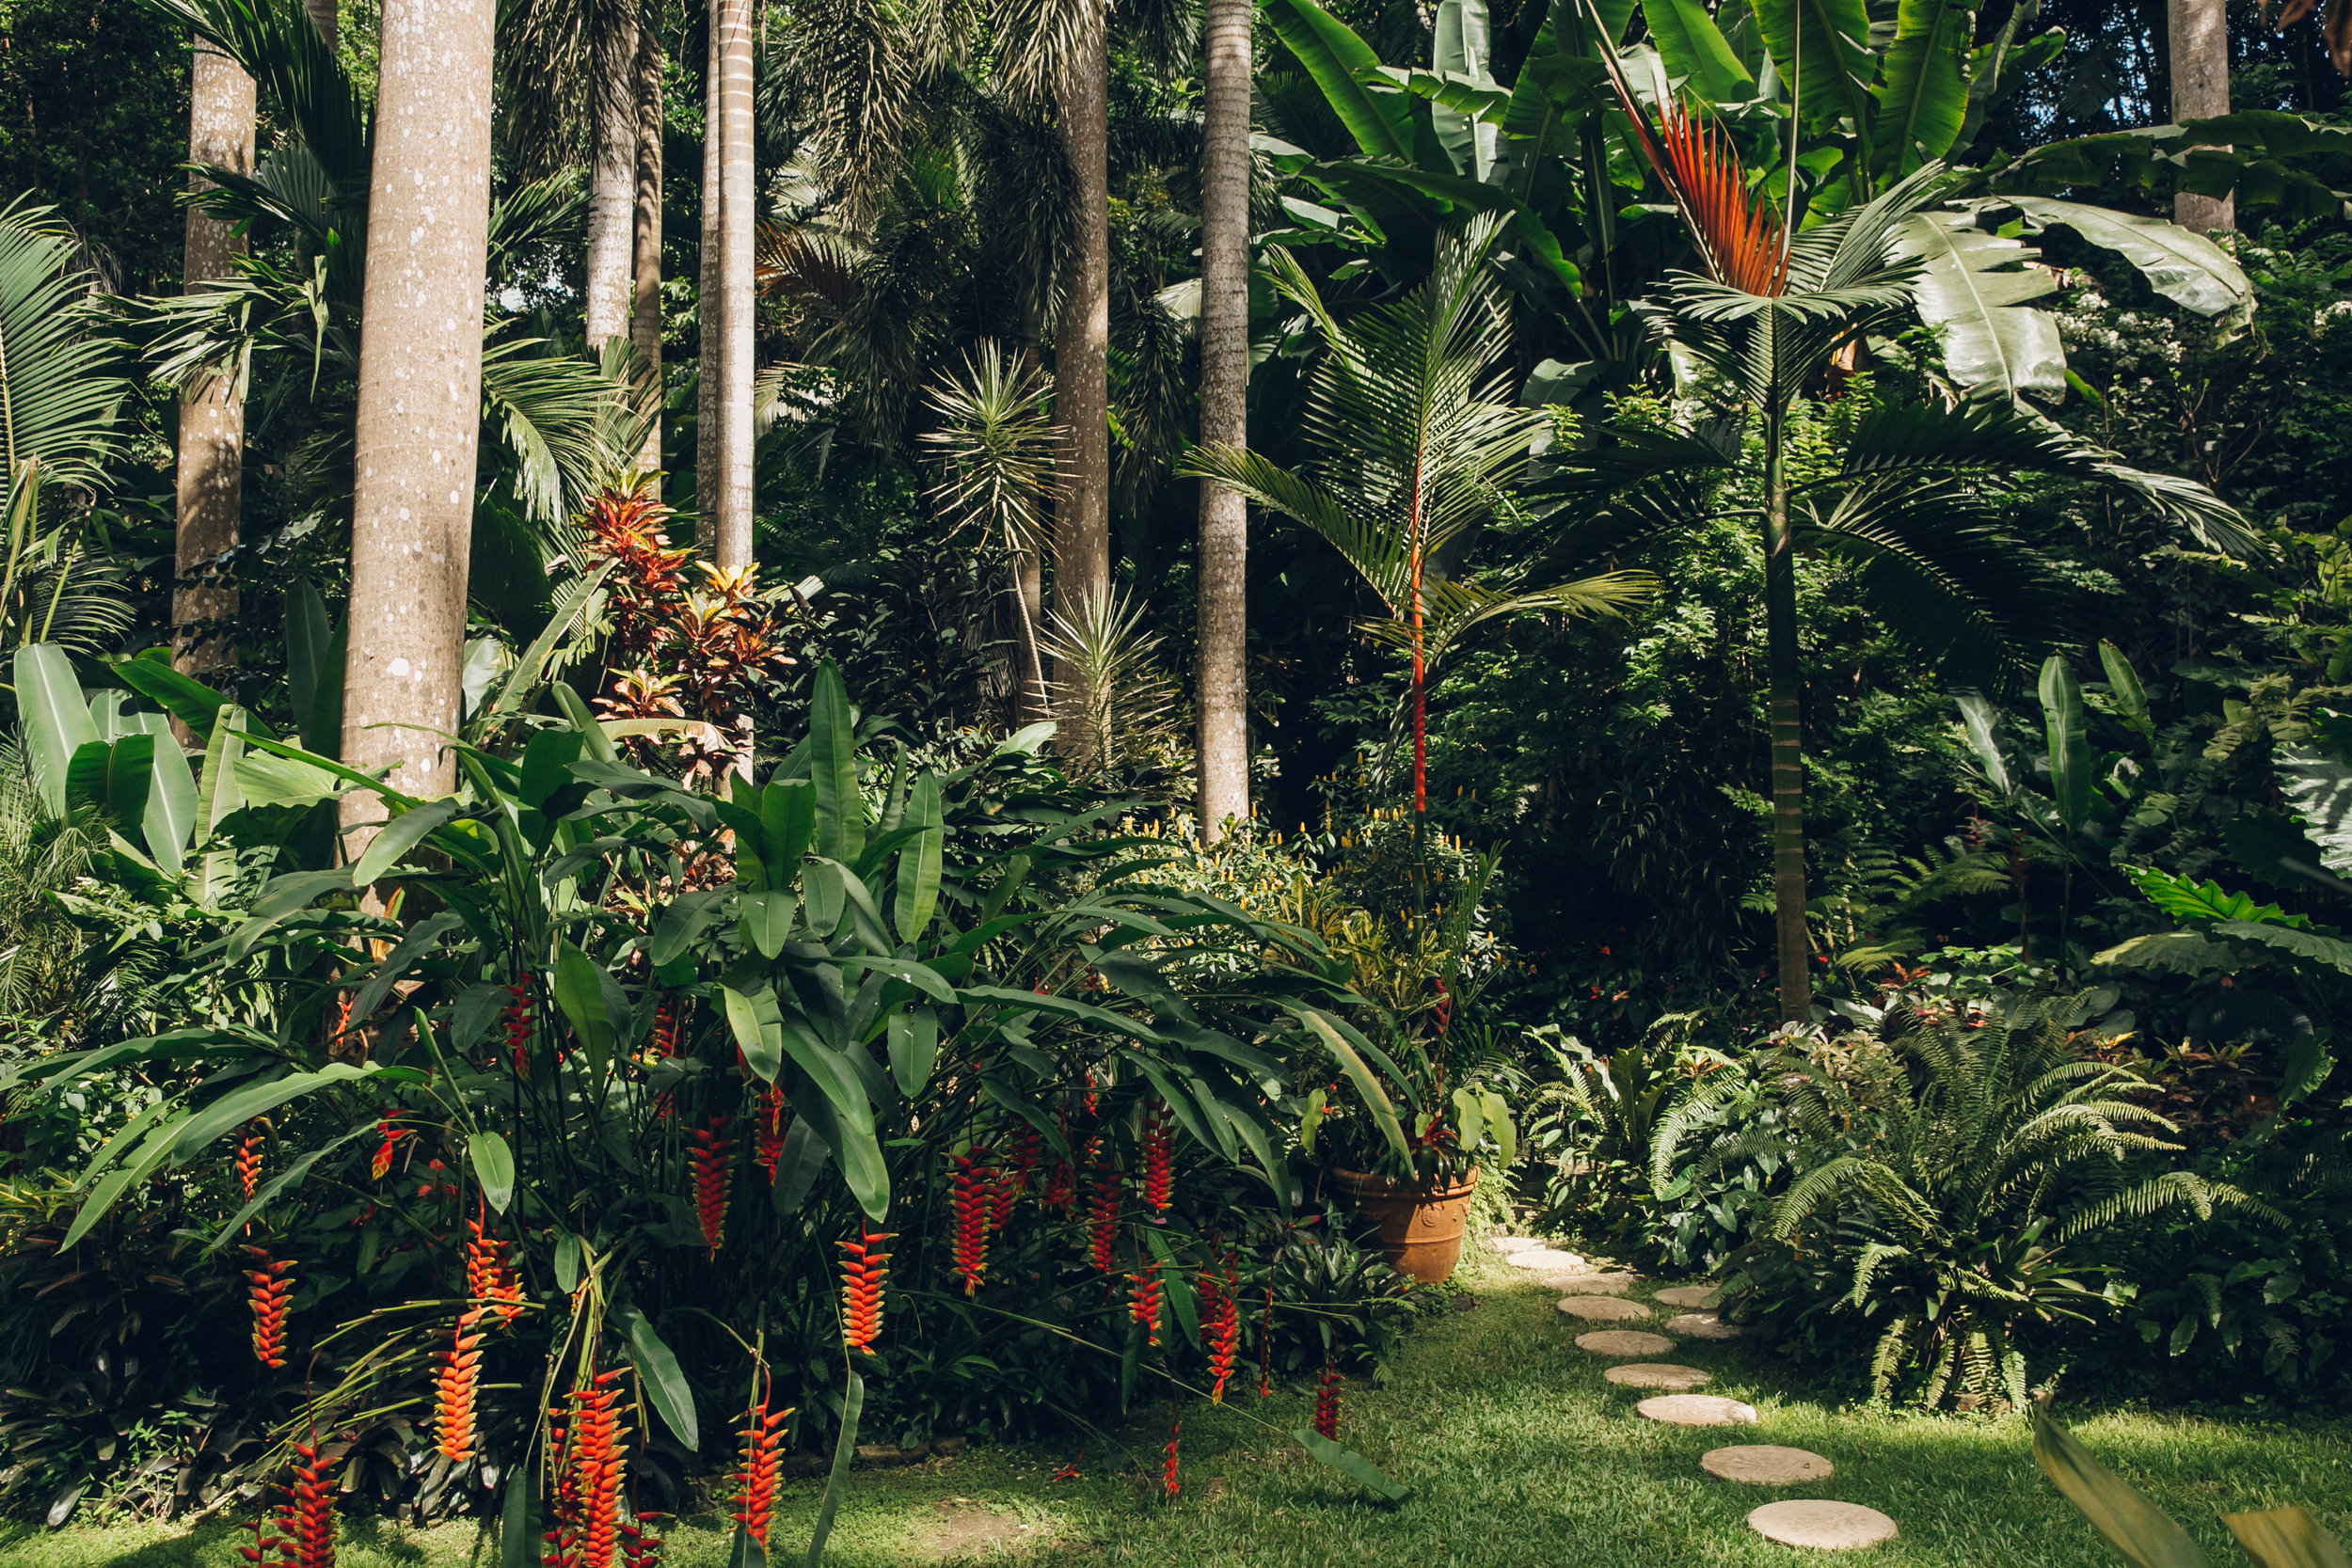 Hunte's Garden in Barbados.